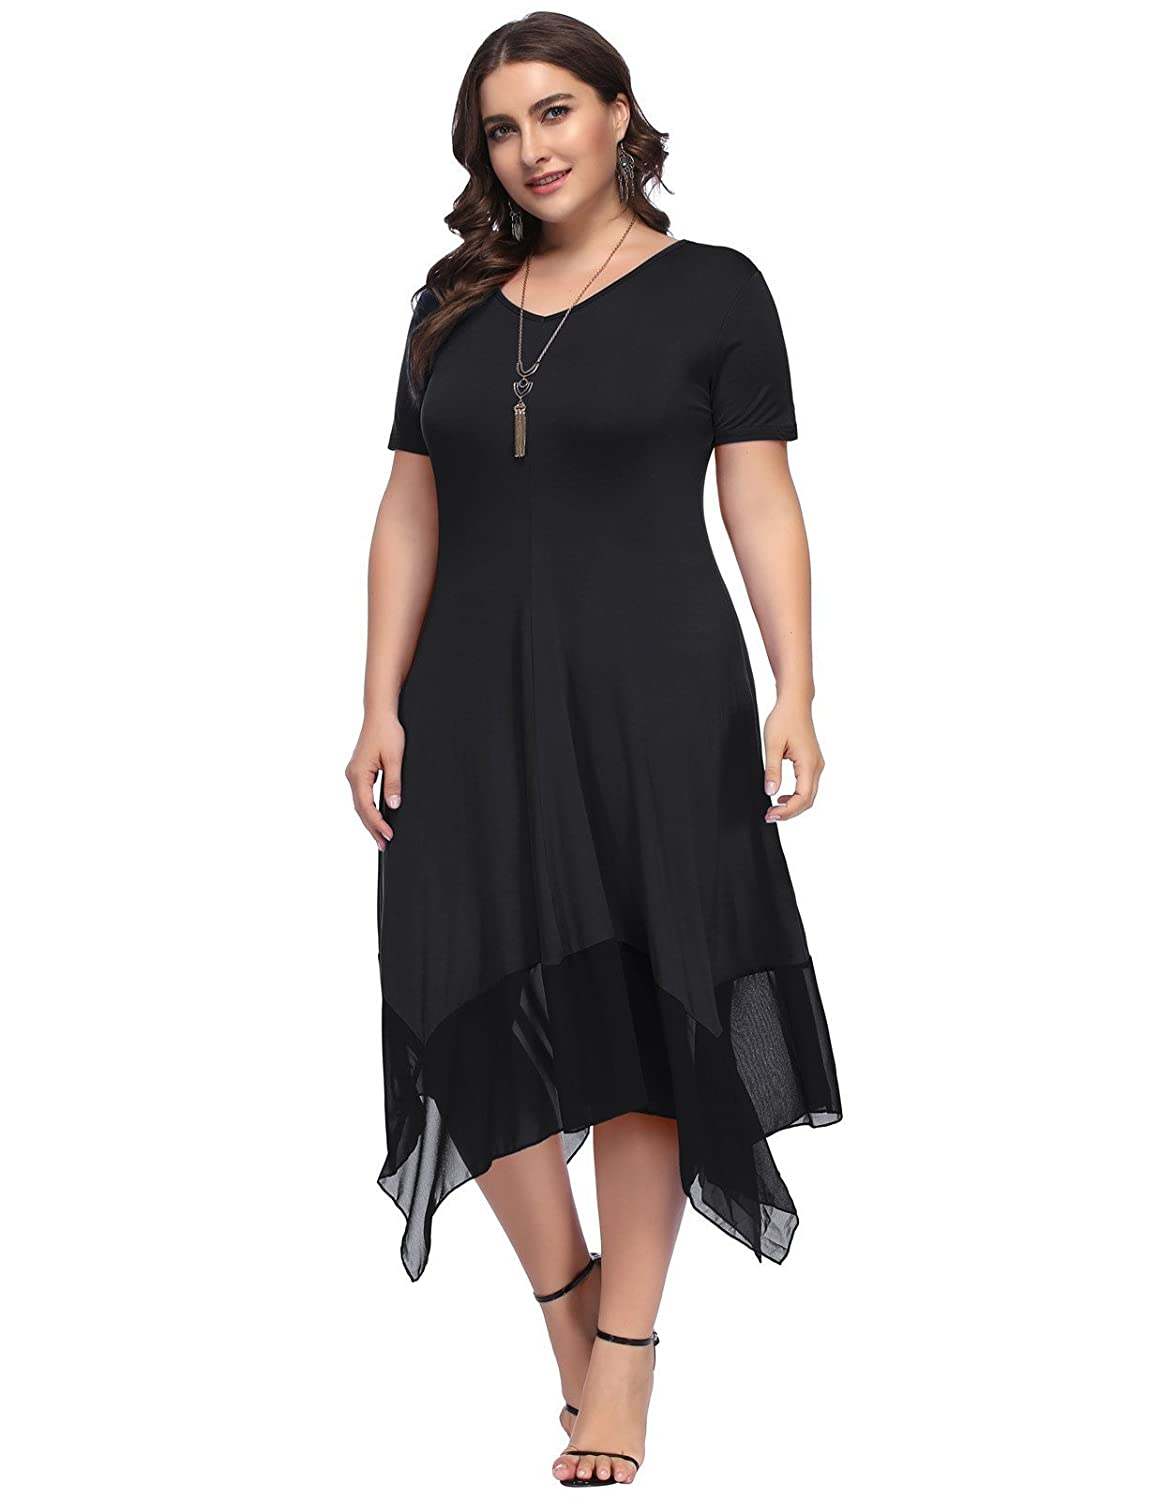 c56baee2686 Top 10 wholesale Plus Size Short Sleeve Summer Dresses - Chinabrands.com